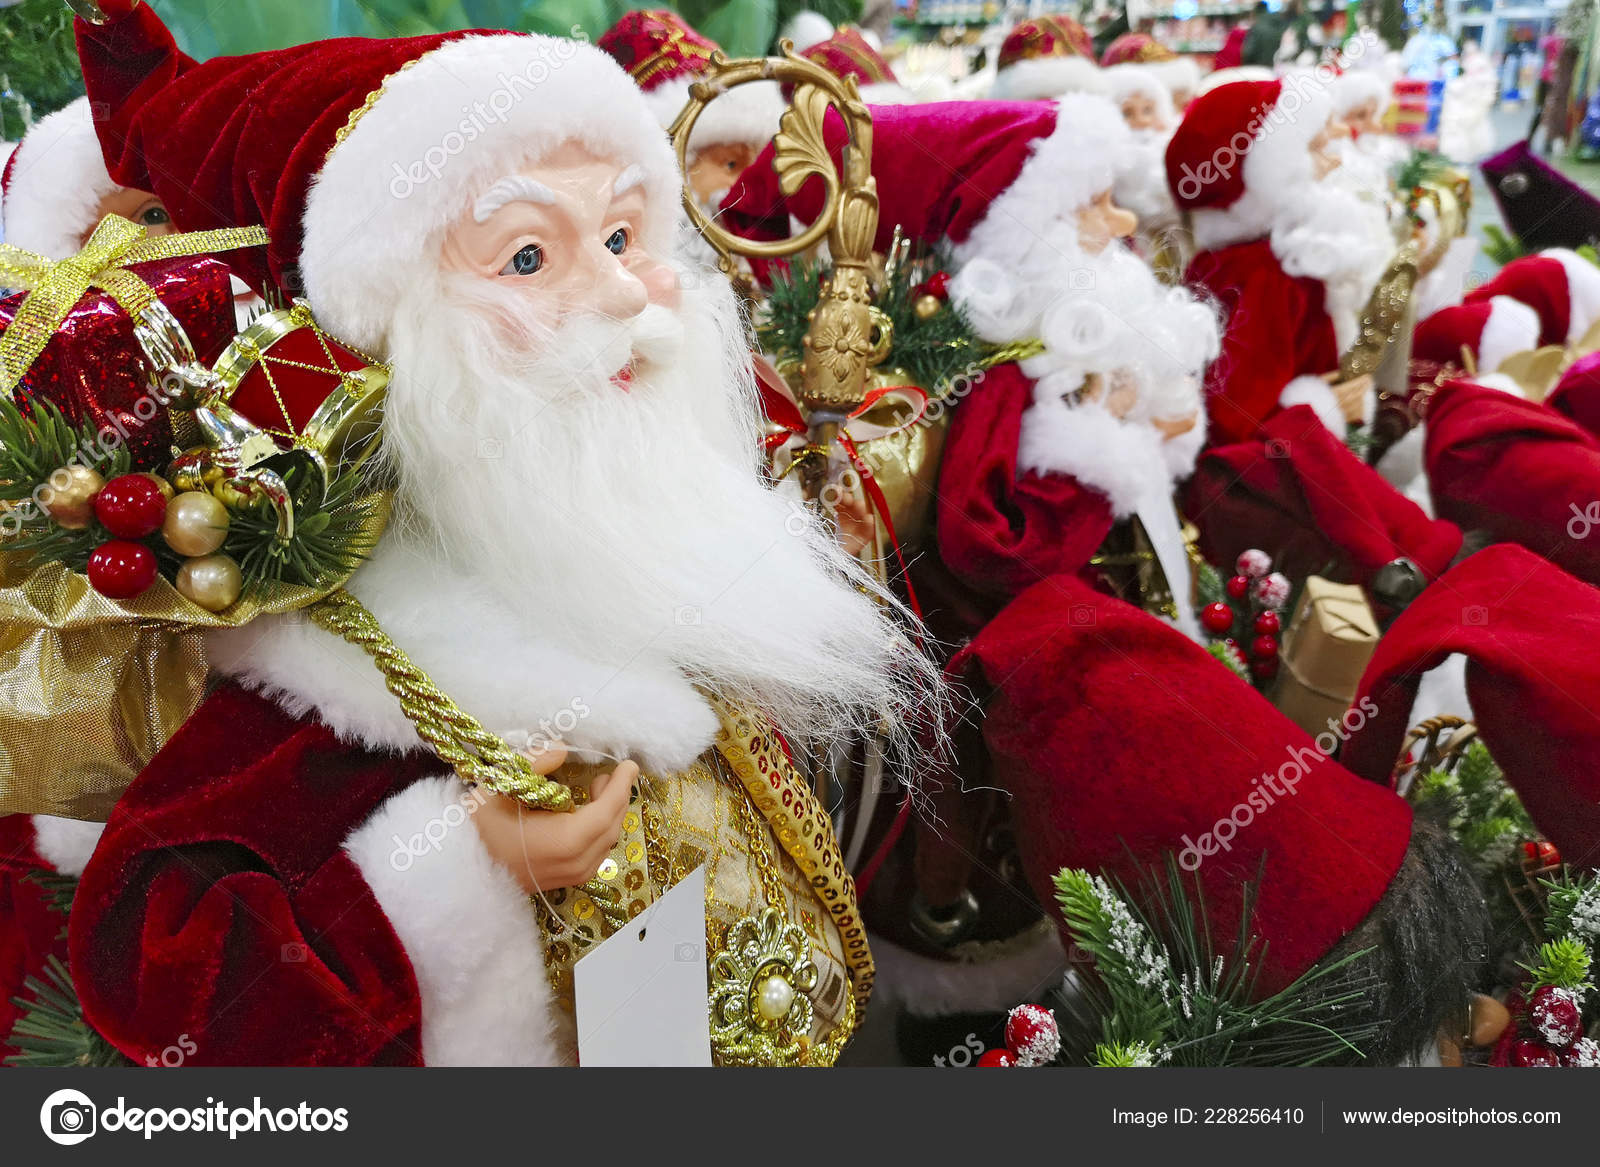 Christmas decorations Santa Claus toy in supermarket Santa s Christmas toys ts and souvenirs to decorate the Christmas tree on the counter in a